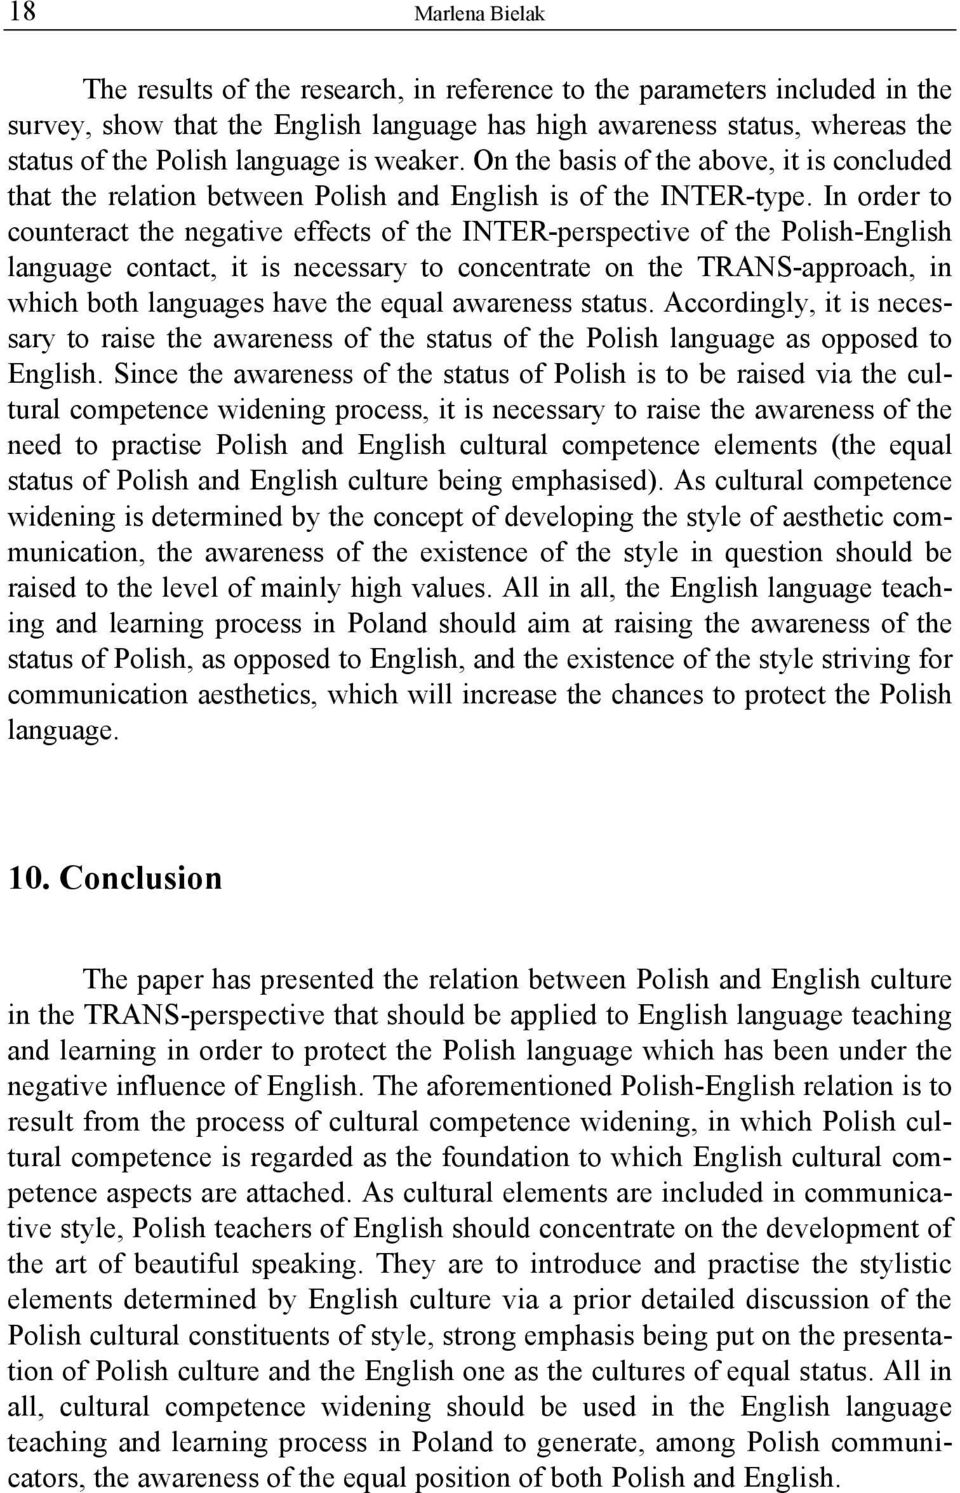 In order to counteract the negative effects of the INTER-perspective of the Polish-English language contact, it is necessary to concentrate on the TRANS-approach, in which both languages have the